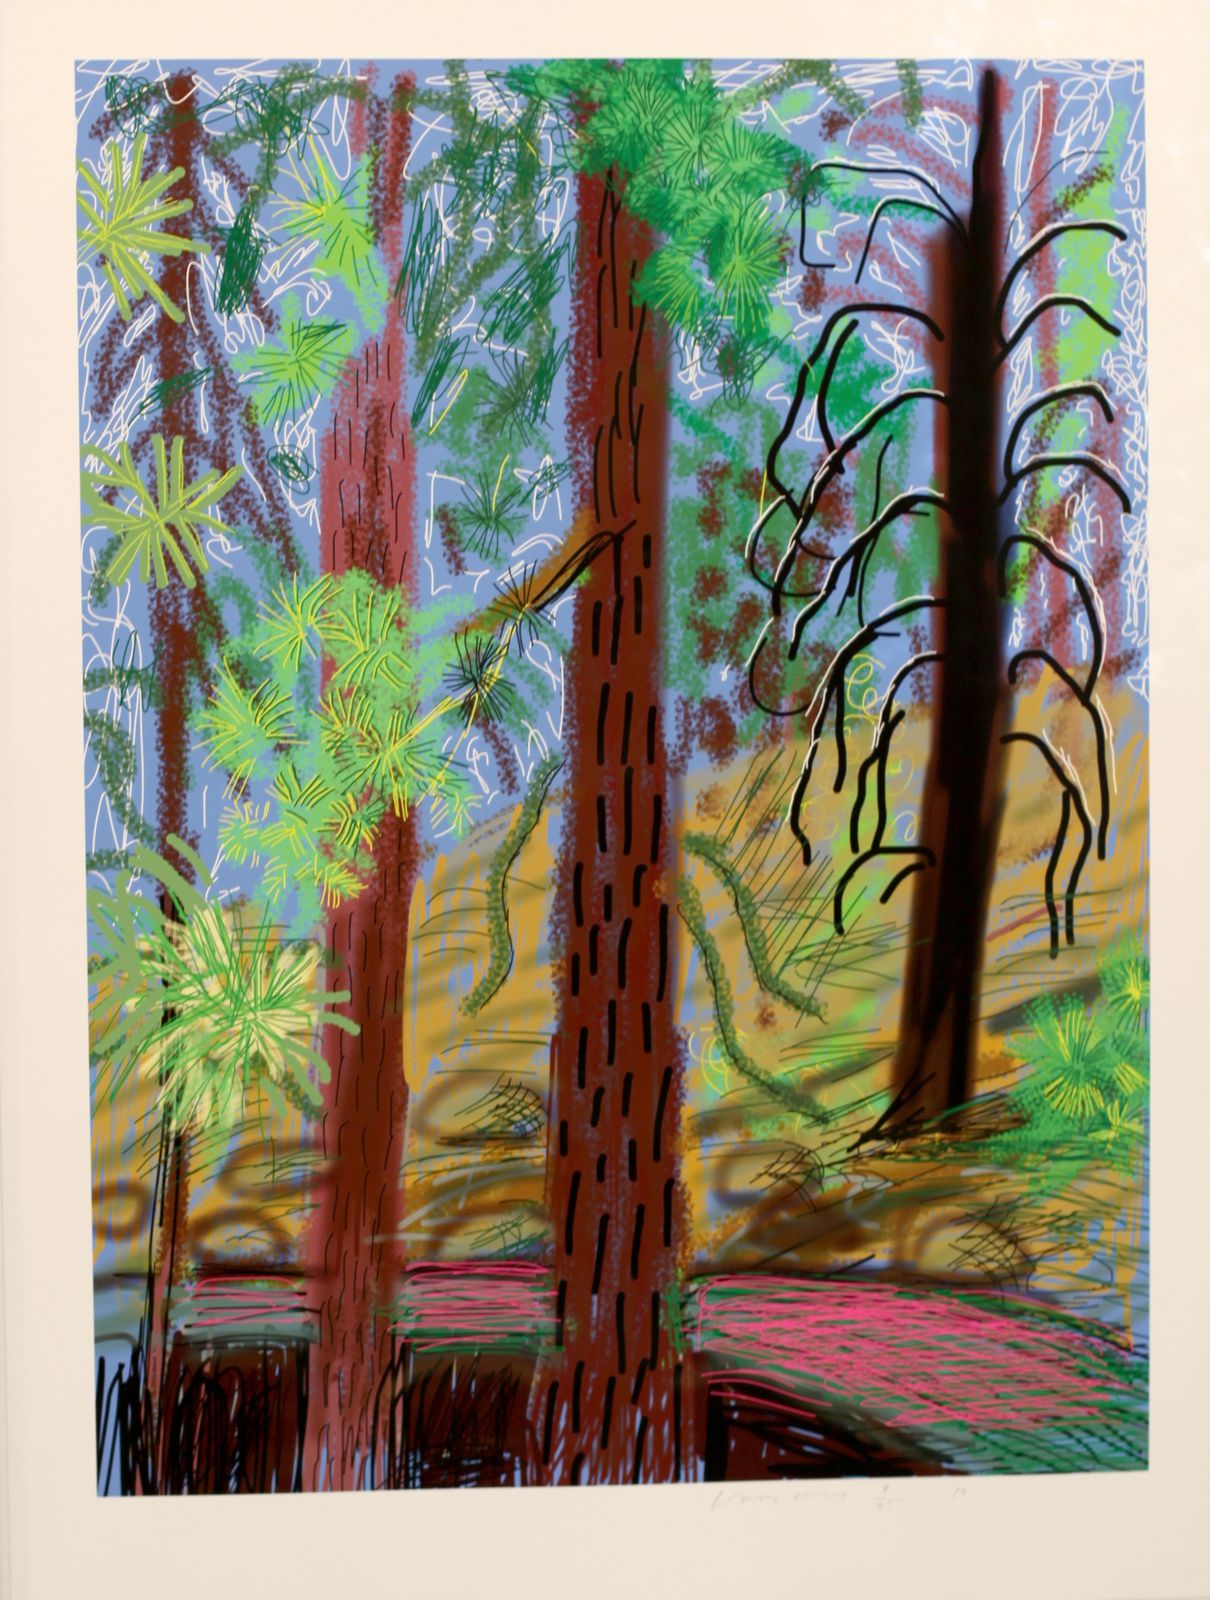 """Untitled N°6 from Yosemite"", 2010 de David HOCKNEY - Courtesy Galerie Lelong © Photo Éric Simon"